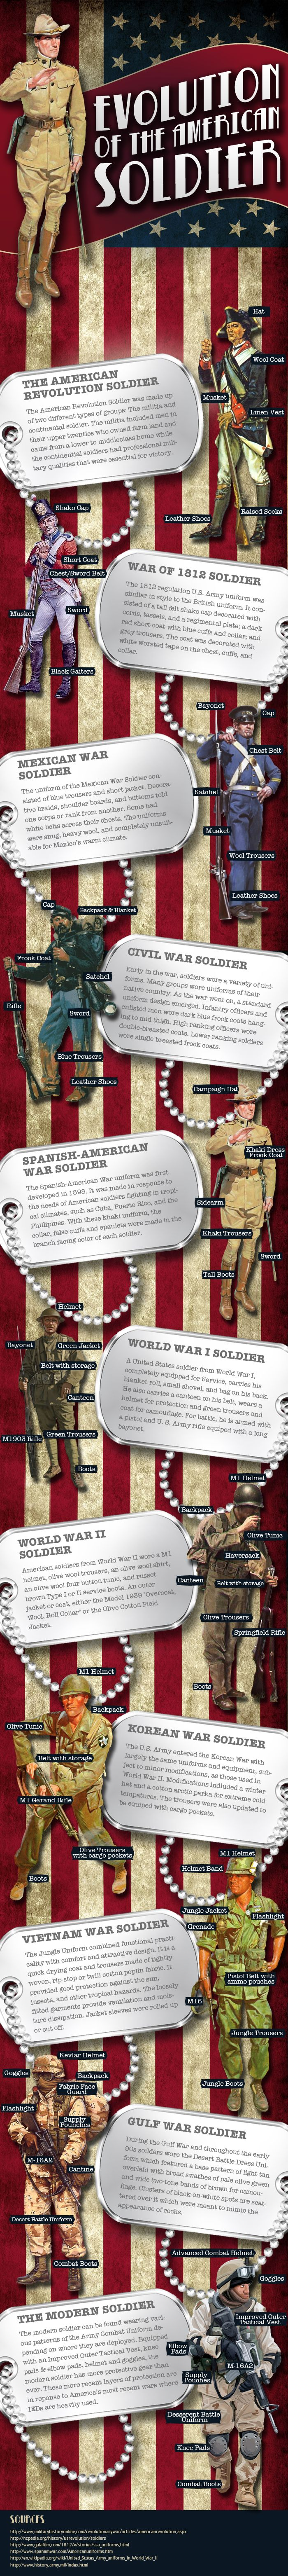 Evolution of the American Soldier's Uniform - original content here - http://www.lowvarates.com/va-loan-blog/the-evolution-of-the-american-soldiers-uniform-infographic/